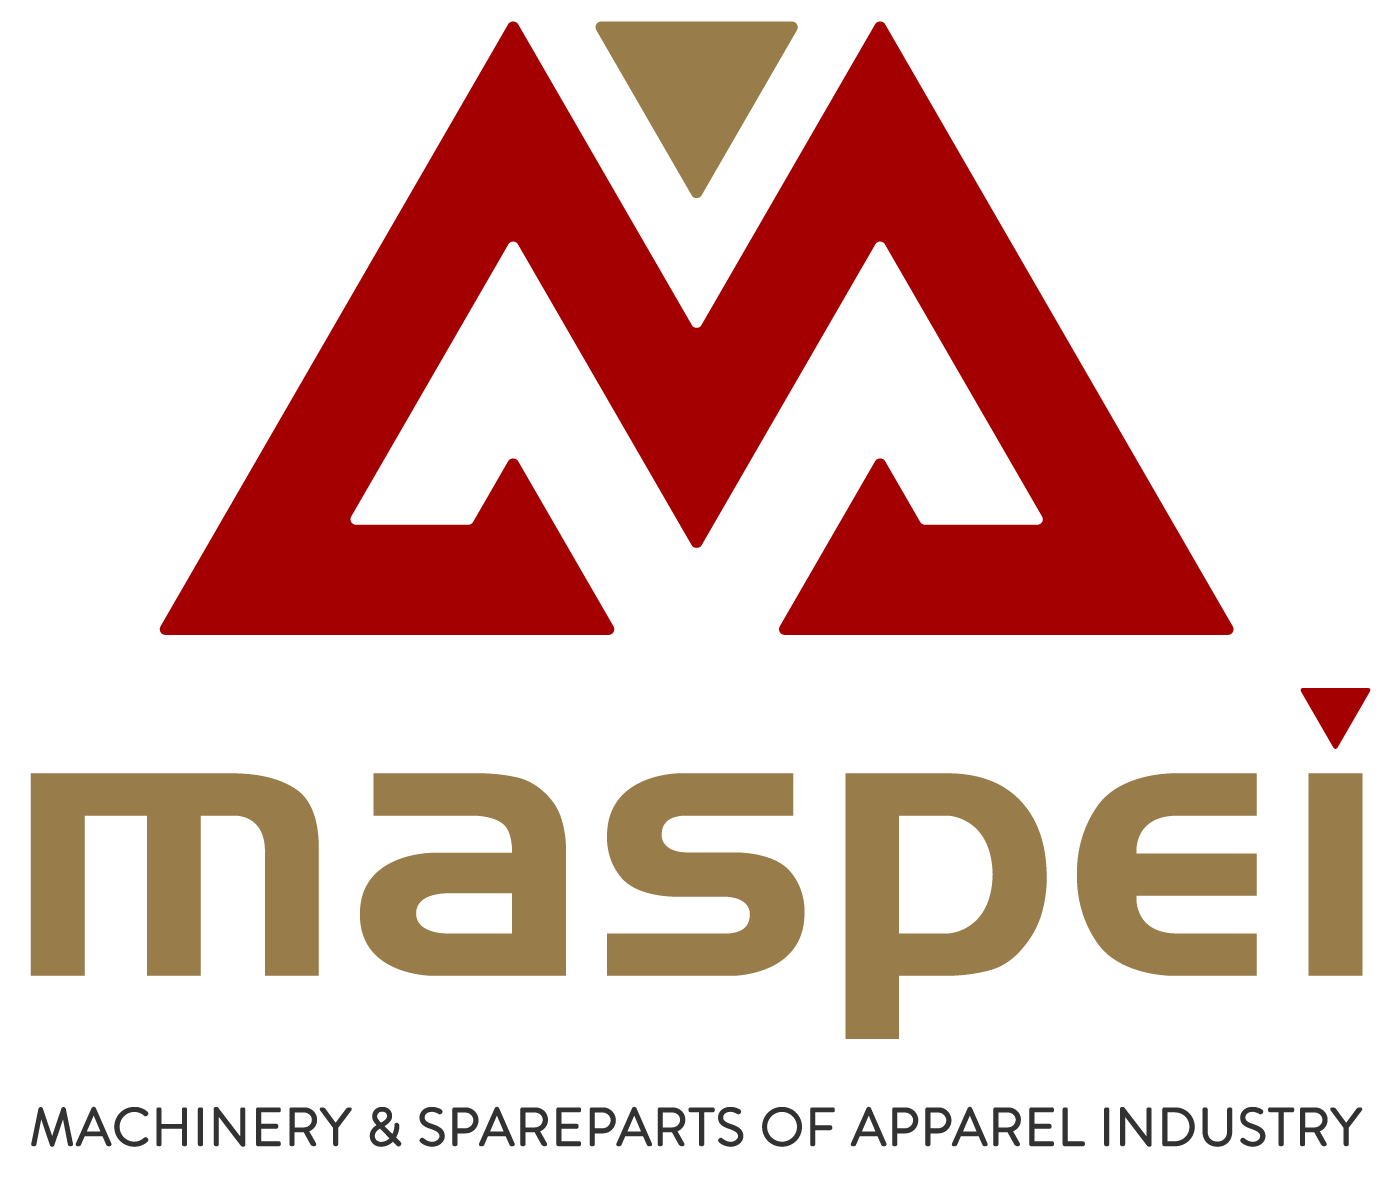 Machinery & Spare Parts Of Apparel Industry